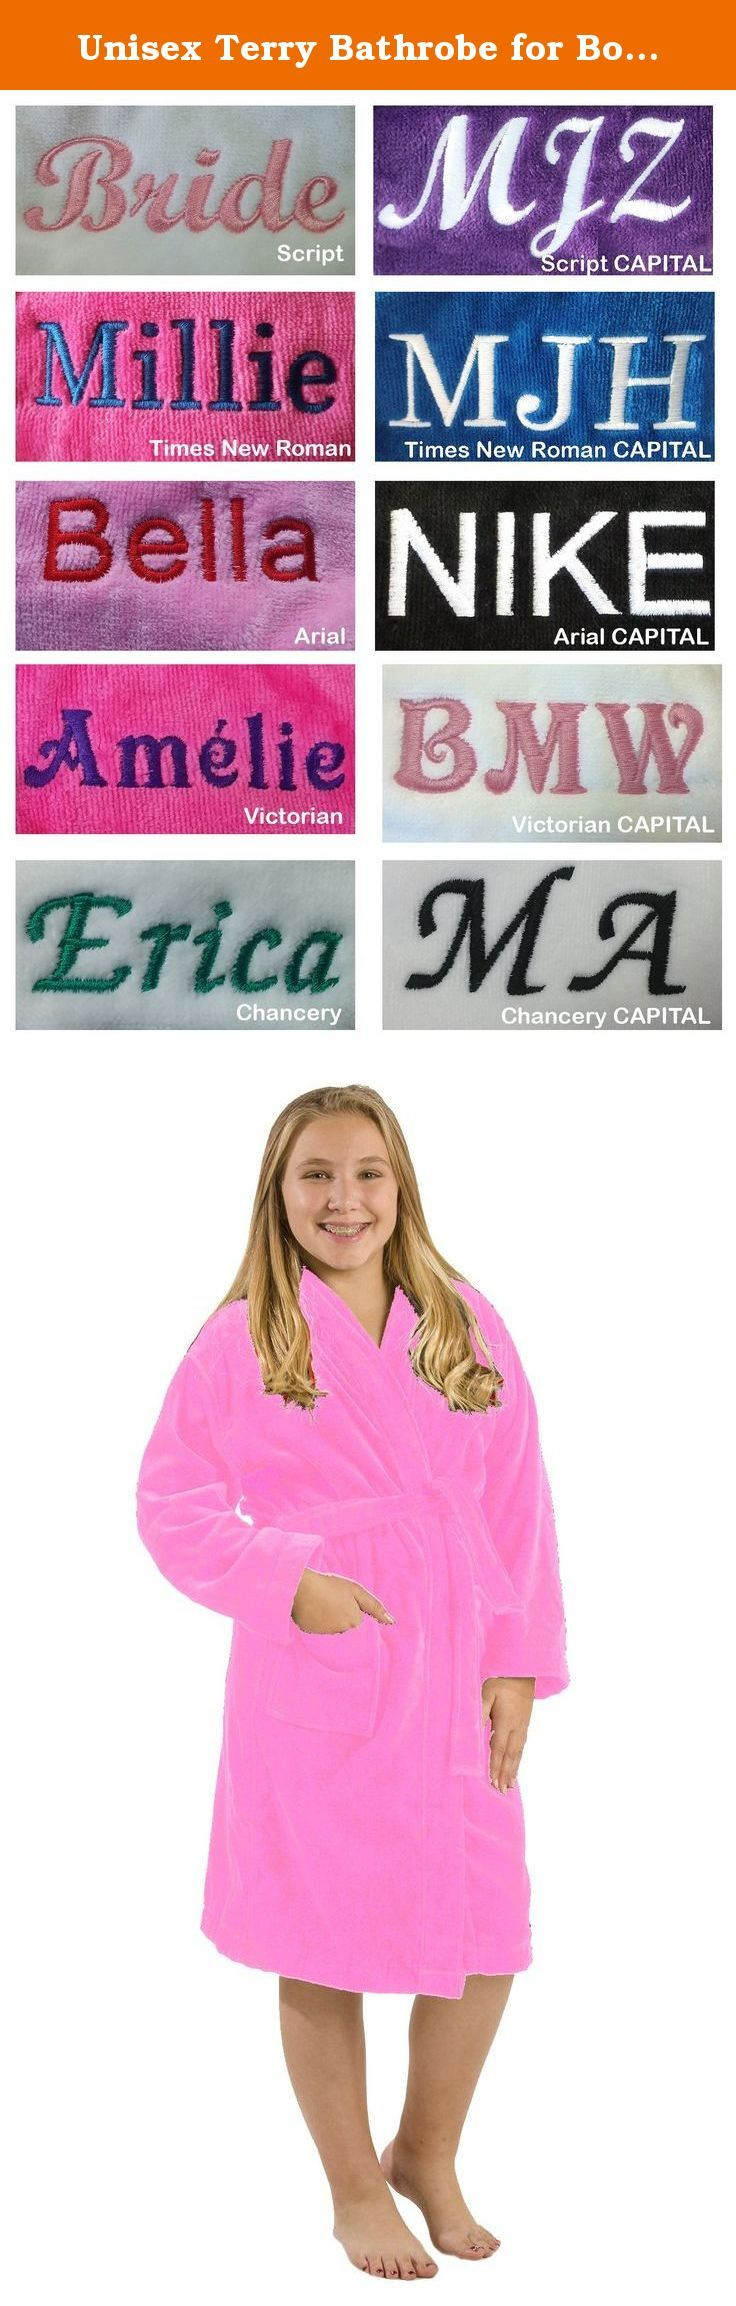 Unisex Terry Bathrobe for Boys and Girls, Pink, LARGE. TERRY VELOUR COTTON HOODED KIDS BATHROBES -Two patch pockets, double stitch for durability. -These kids robes can be used for bath, spa, shower, swimming pool, lounge or sauna. -400 gsm 100% Cotton, 21single/2 ply ring spun yarn loops, triple sheared terry on the outside and loop terry cloth on the inside. -Available Colors: Purple, White, Black,Pink, Fuchsia, Navy, Royal Blue and Red. -Here is the measurement of the Sizes: Hoods are...